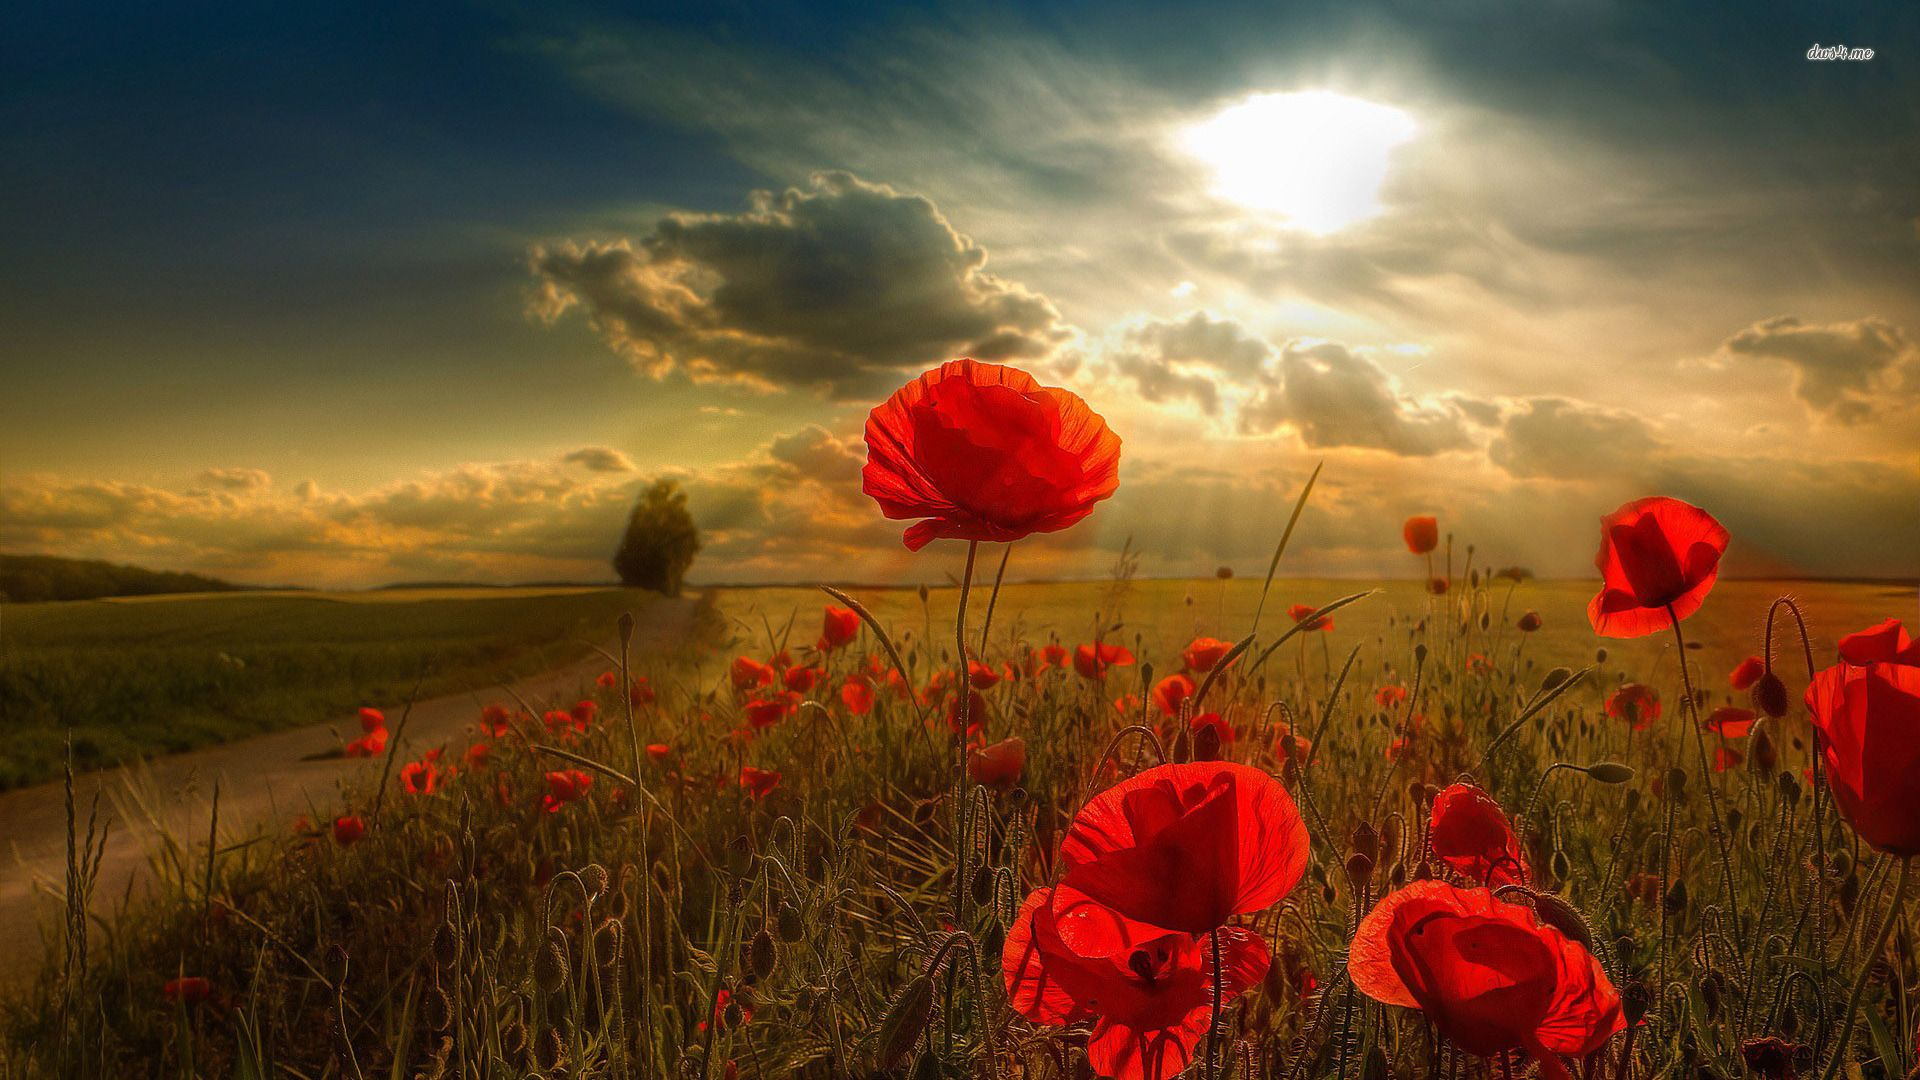 11643 poppy field 1920x1080 flower wallpaper 1920a—1080 landscape pinterest poppy images wallpaper free download and wallpaper